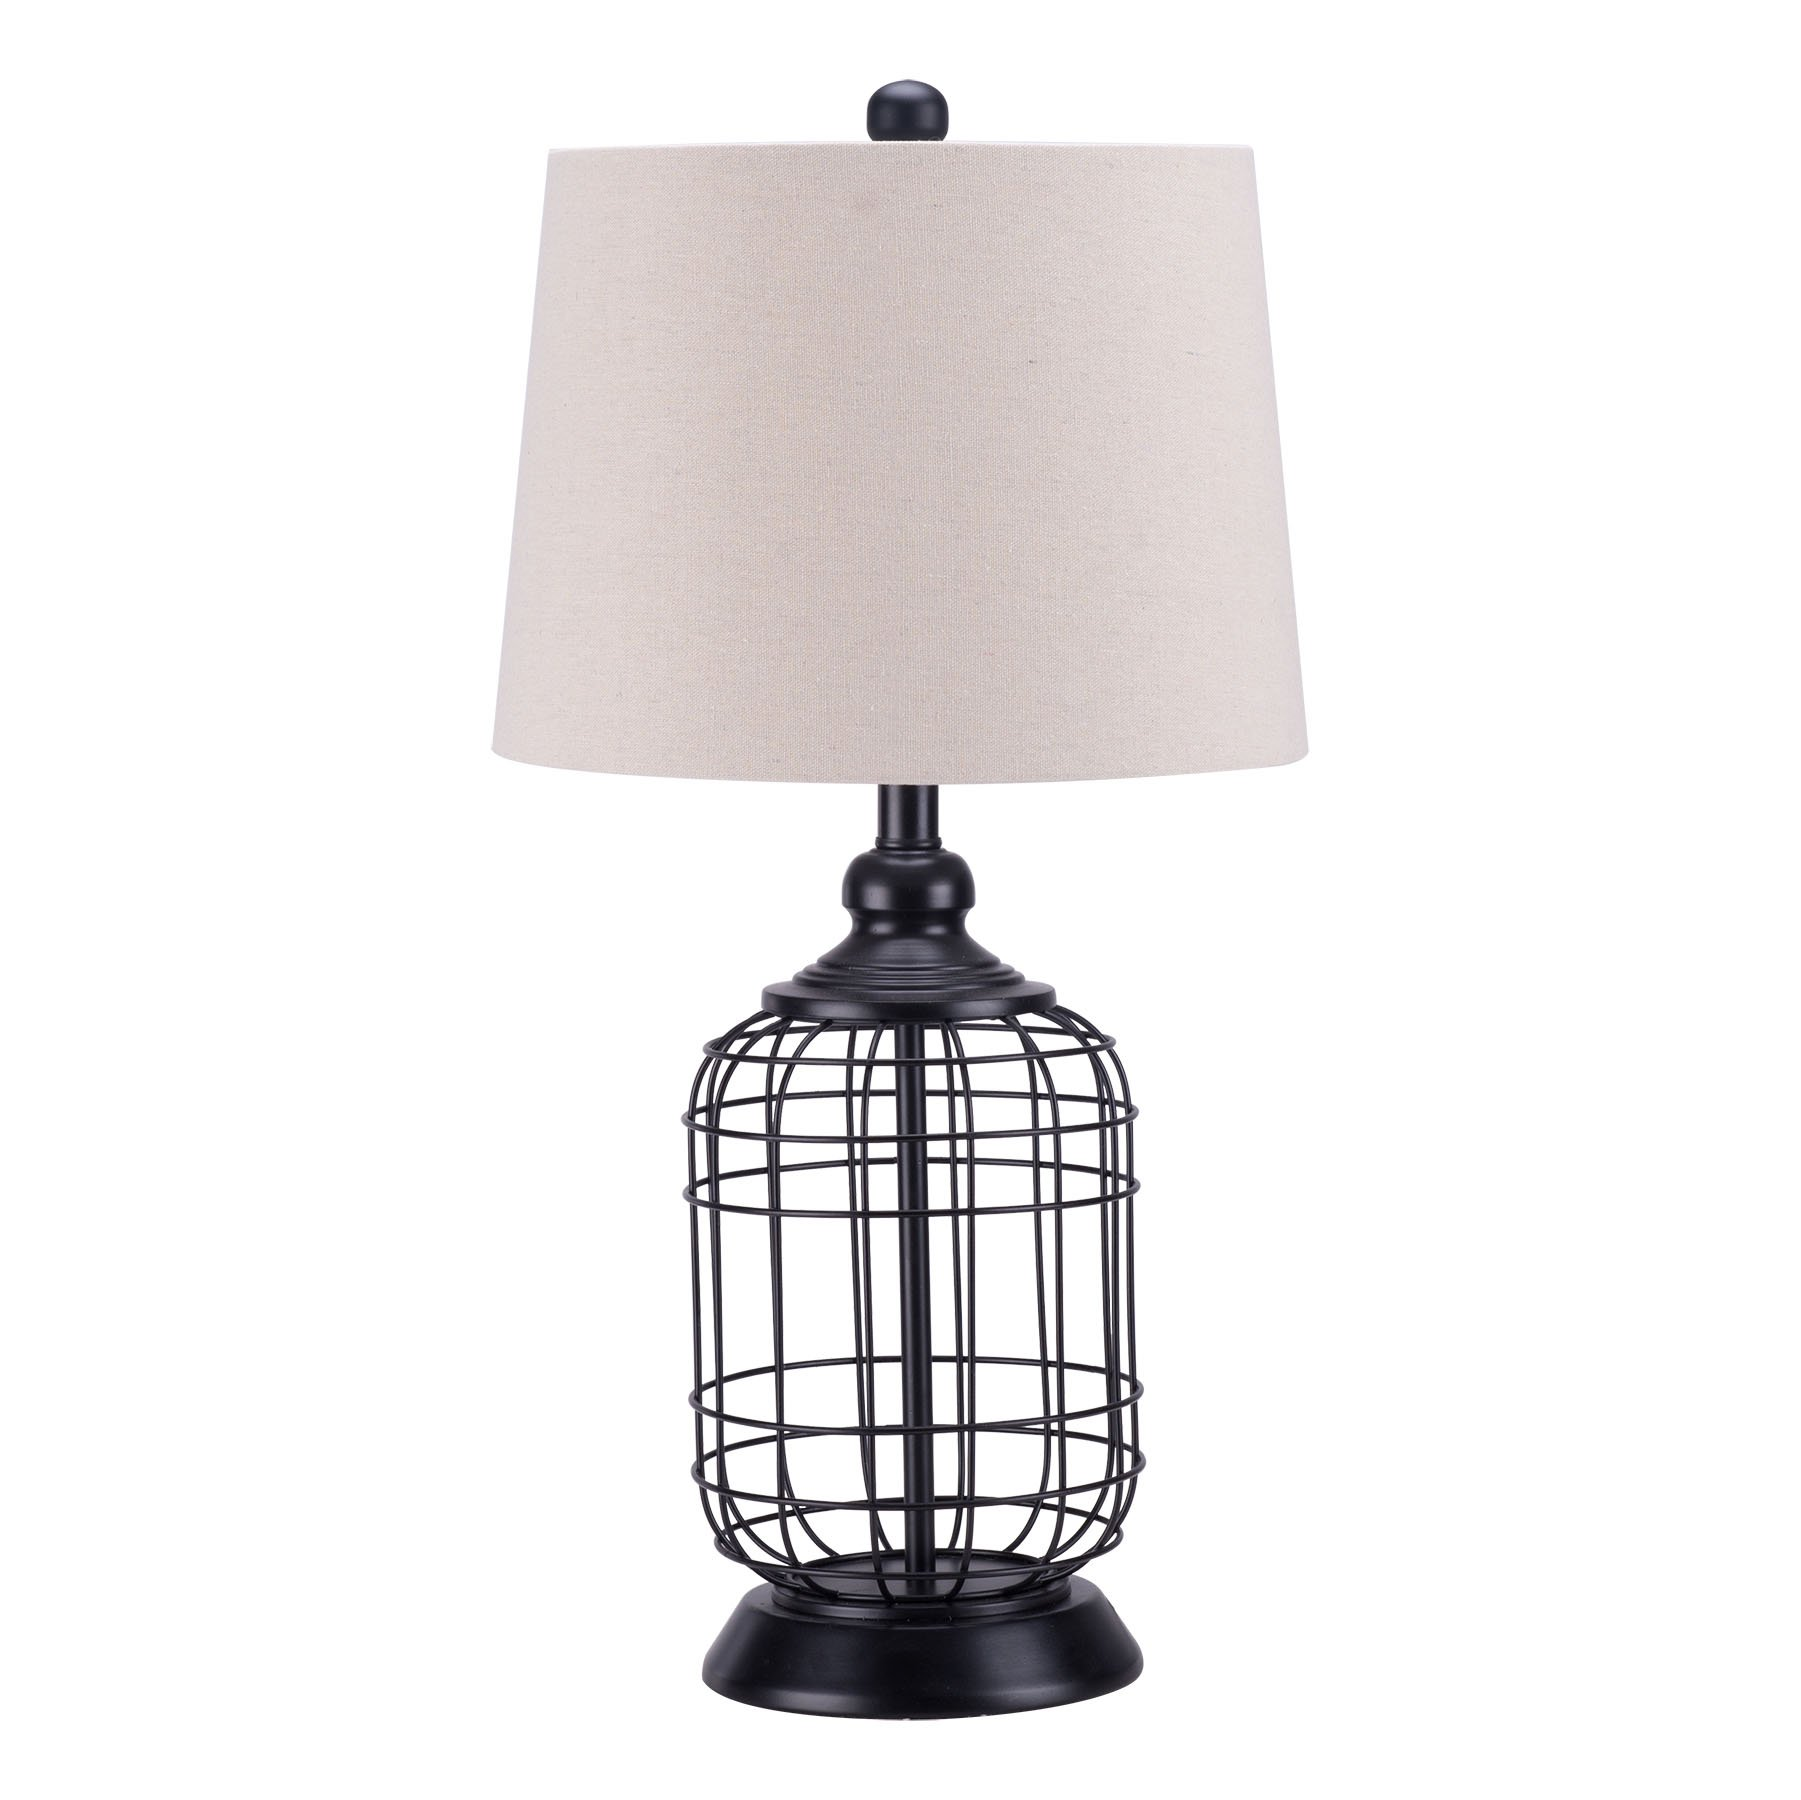 CO-Z Birdcage Base Table Lamps, Anti-Rust Metal Base & Oatmeal Linen Shade Desk Lamp, 25.5 Inches Height for Living Room Bedroom Bedside Console (Black)